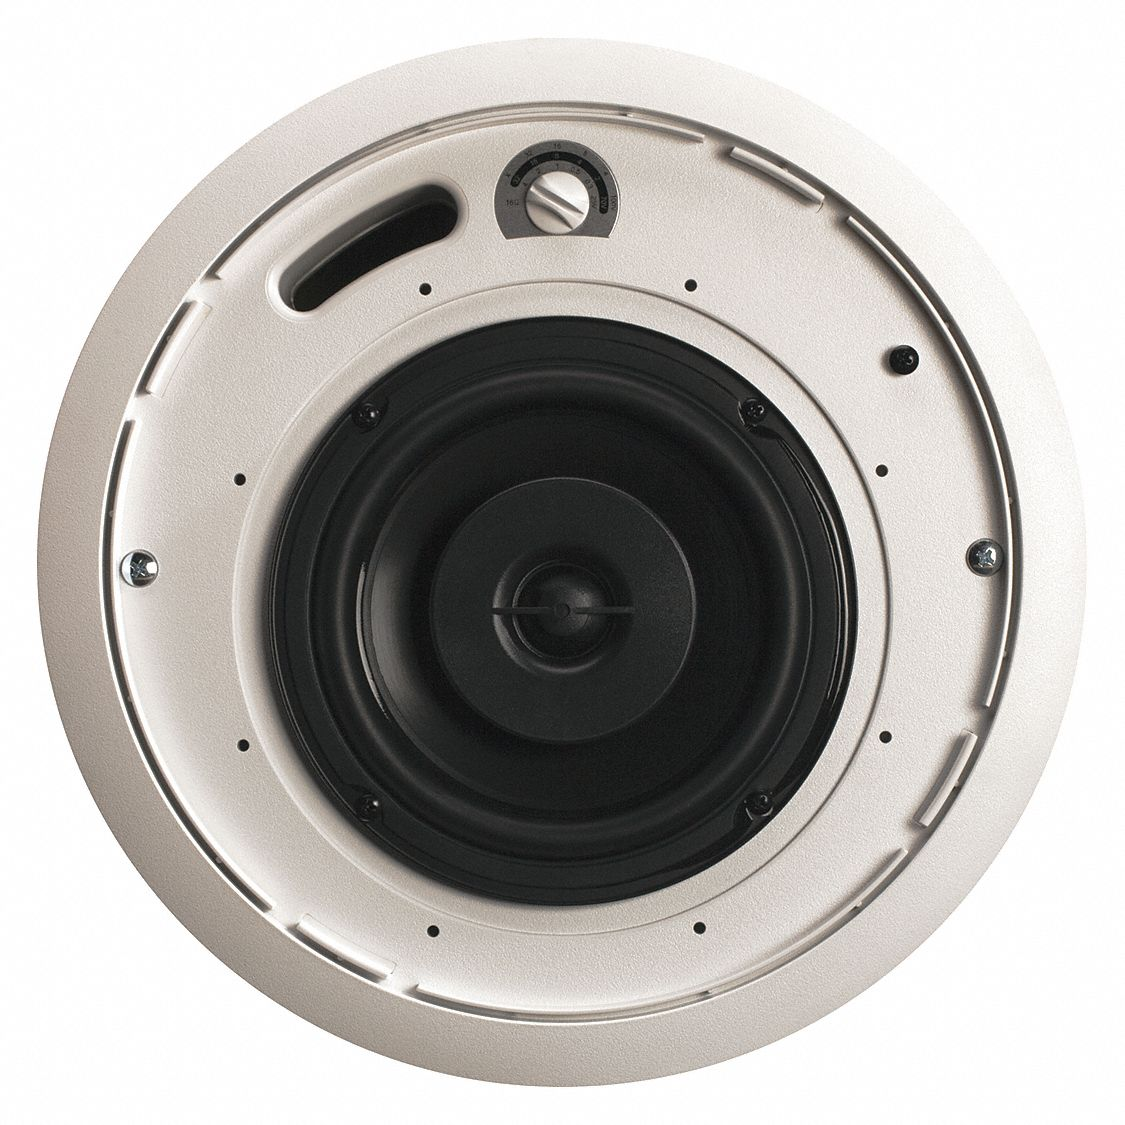 In-Ceiling Speaker,  80 Watt (RMS),  16 ohm Impedance (Ohms),  10 Overall Height (In.)